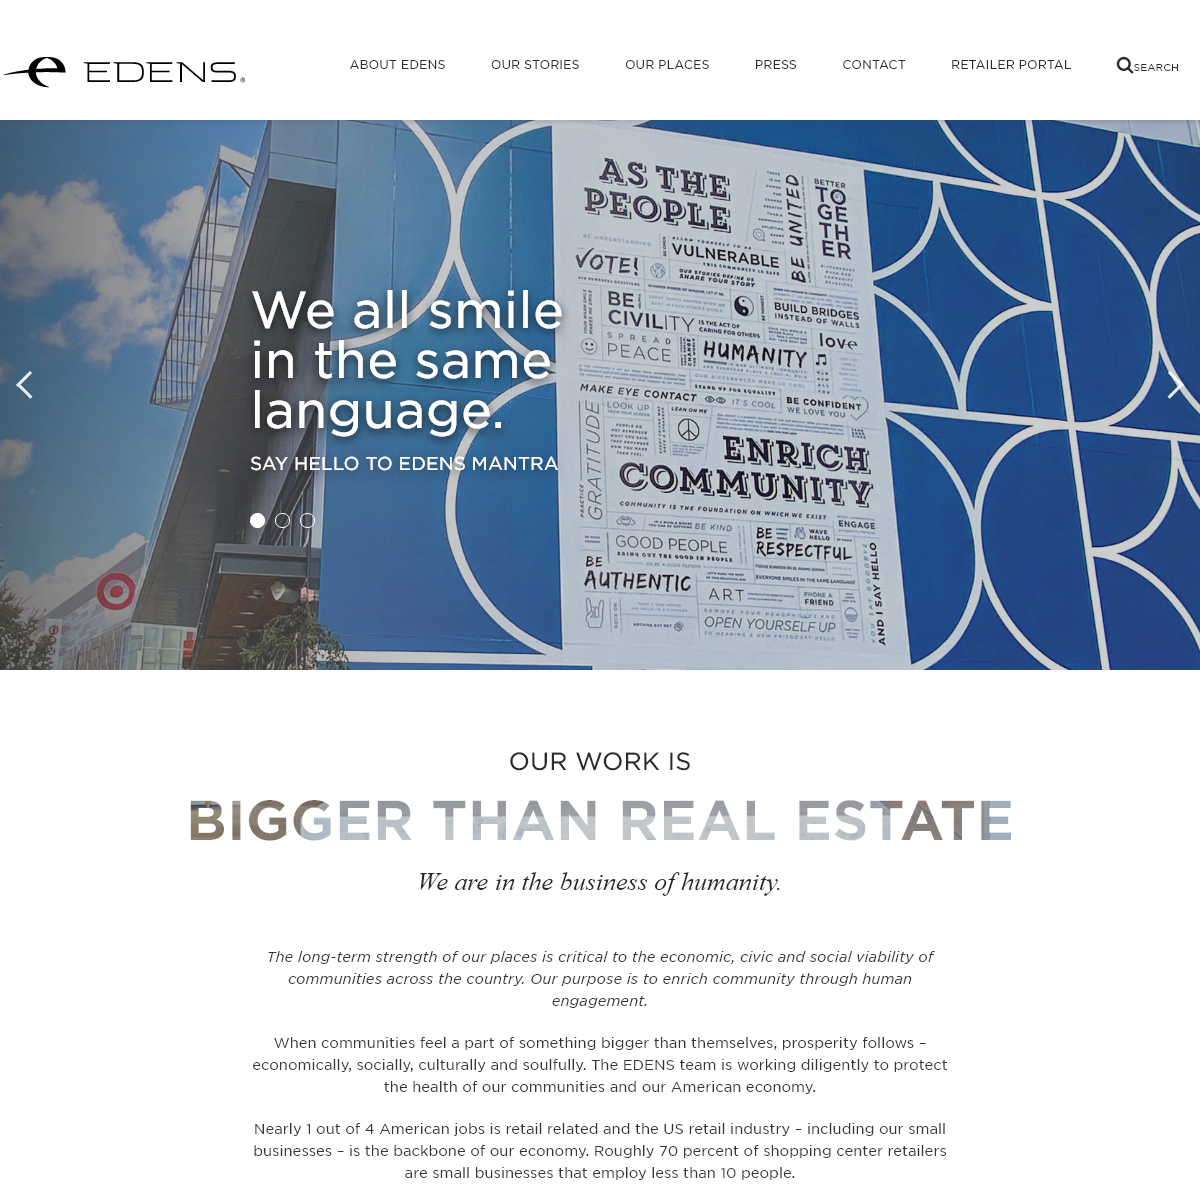 Home - EDENS - Real Estate Owner, Operator and Developer of over 125 Properties